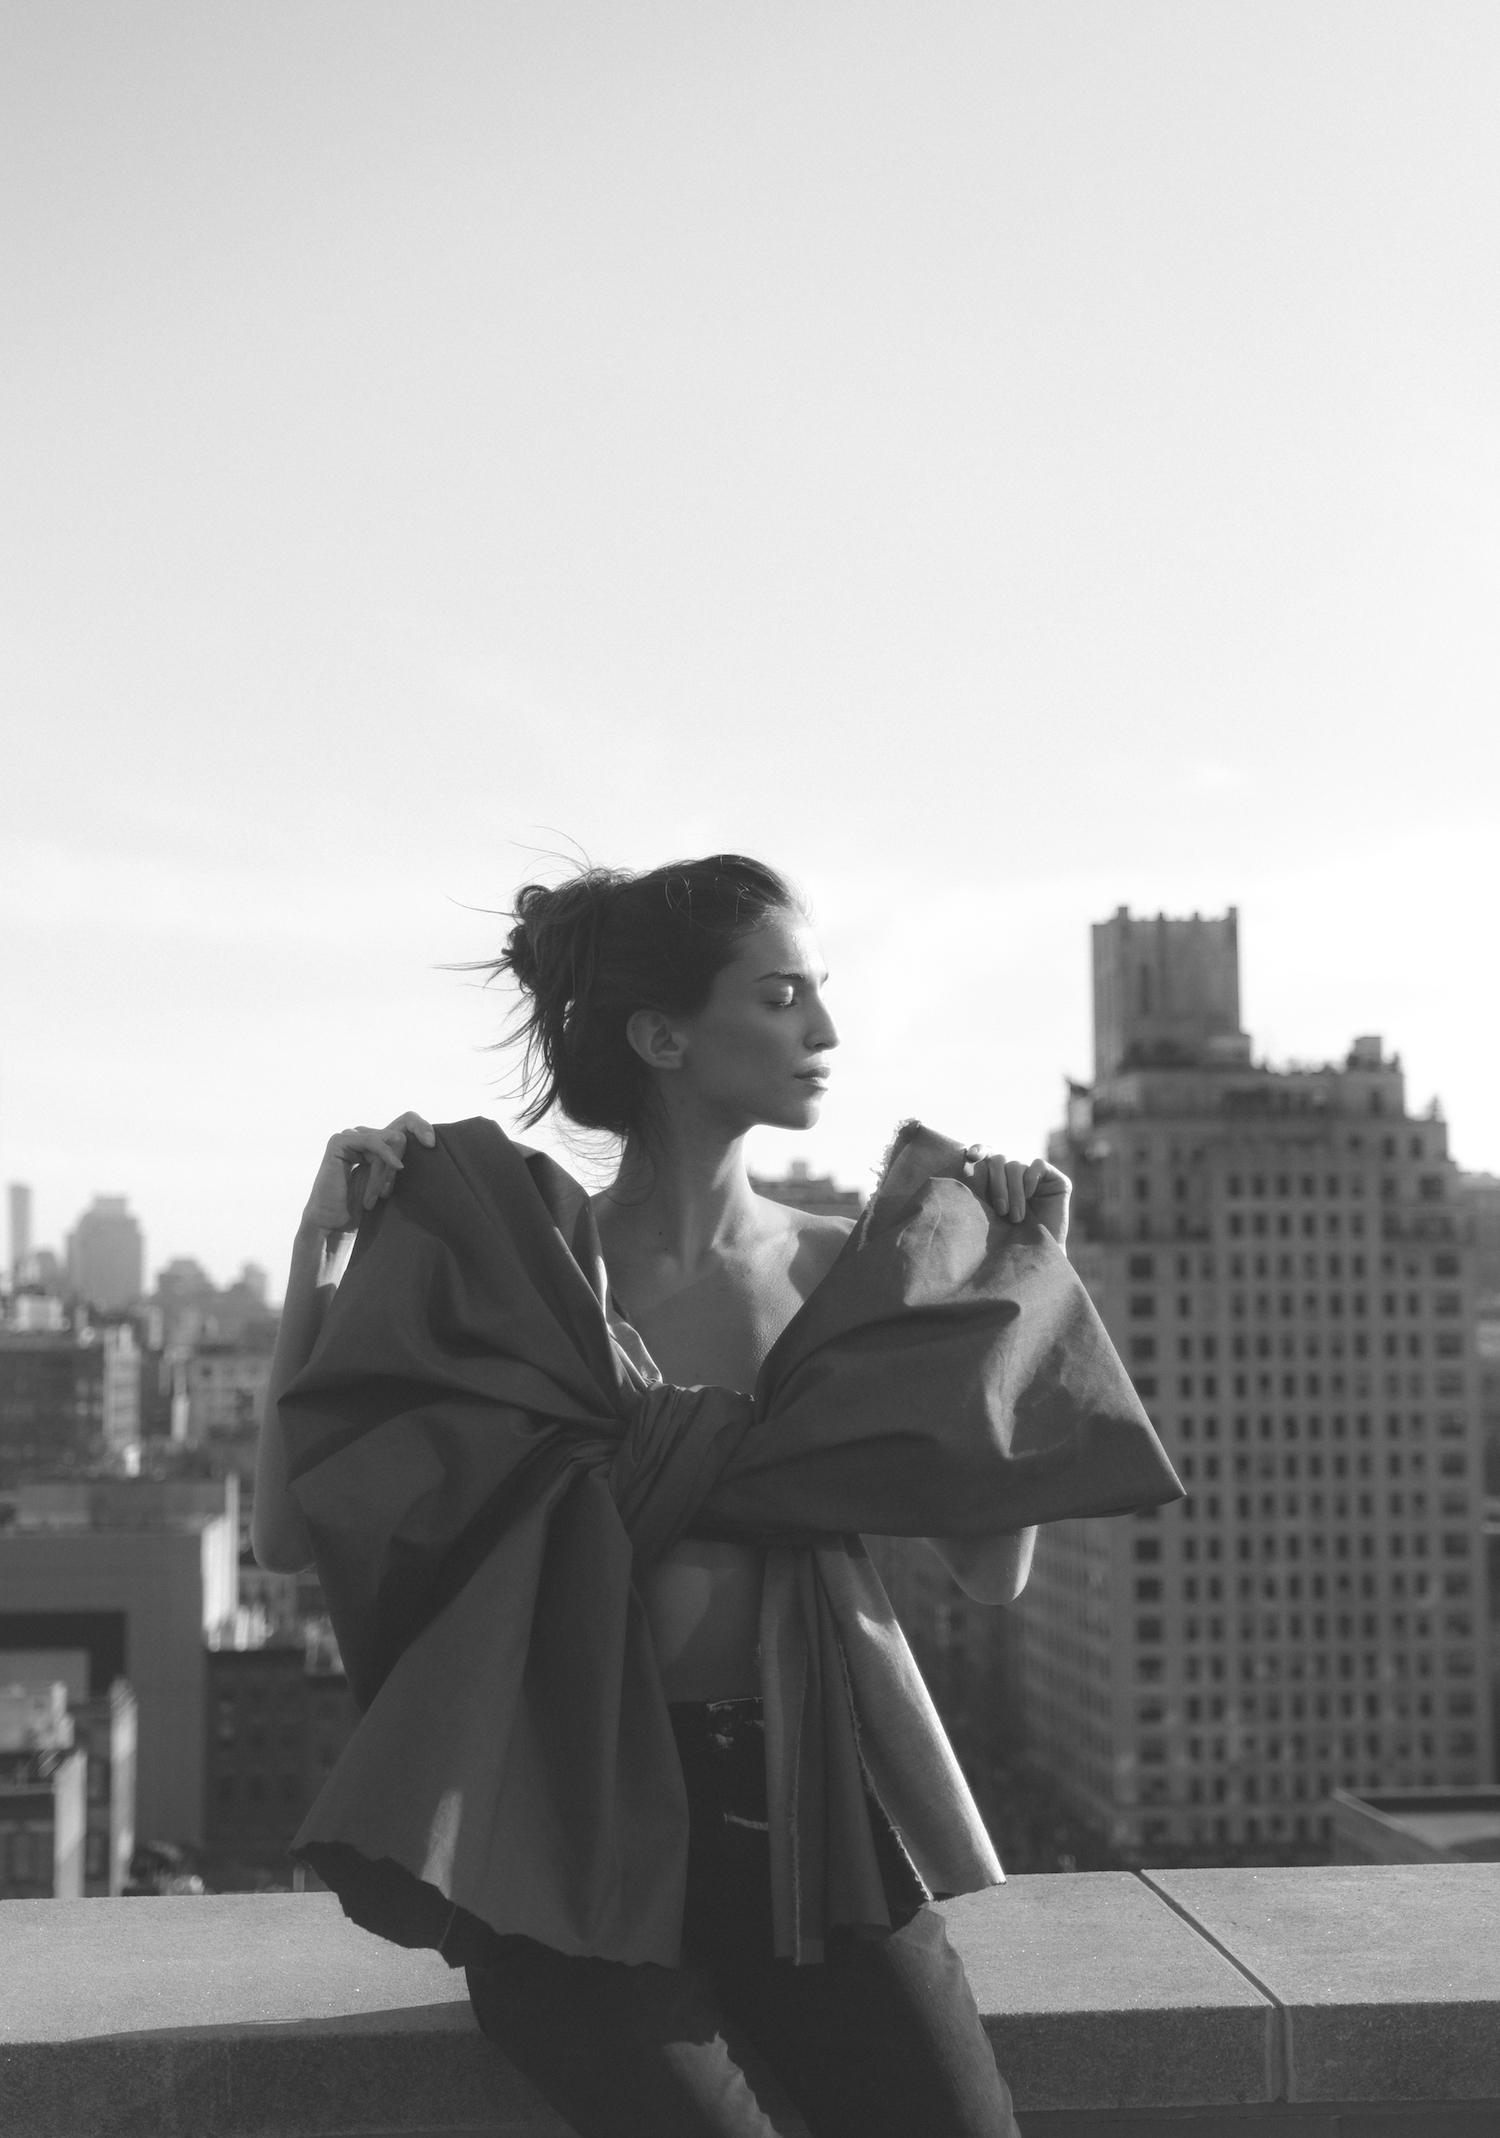 Marina Testino wrapped in a large isko denim bow on the roof with NYC in the background